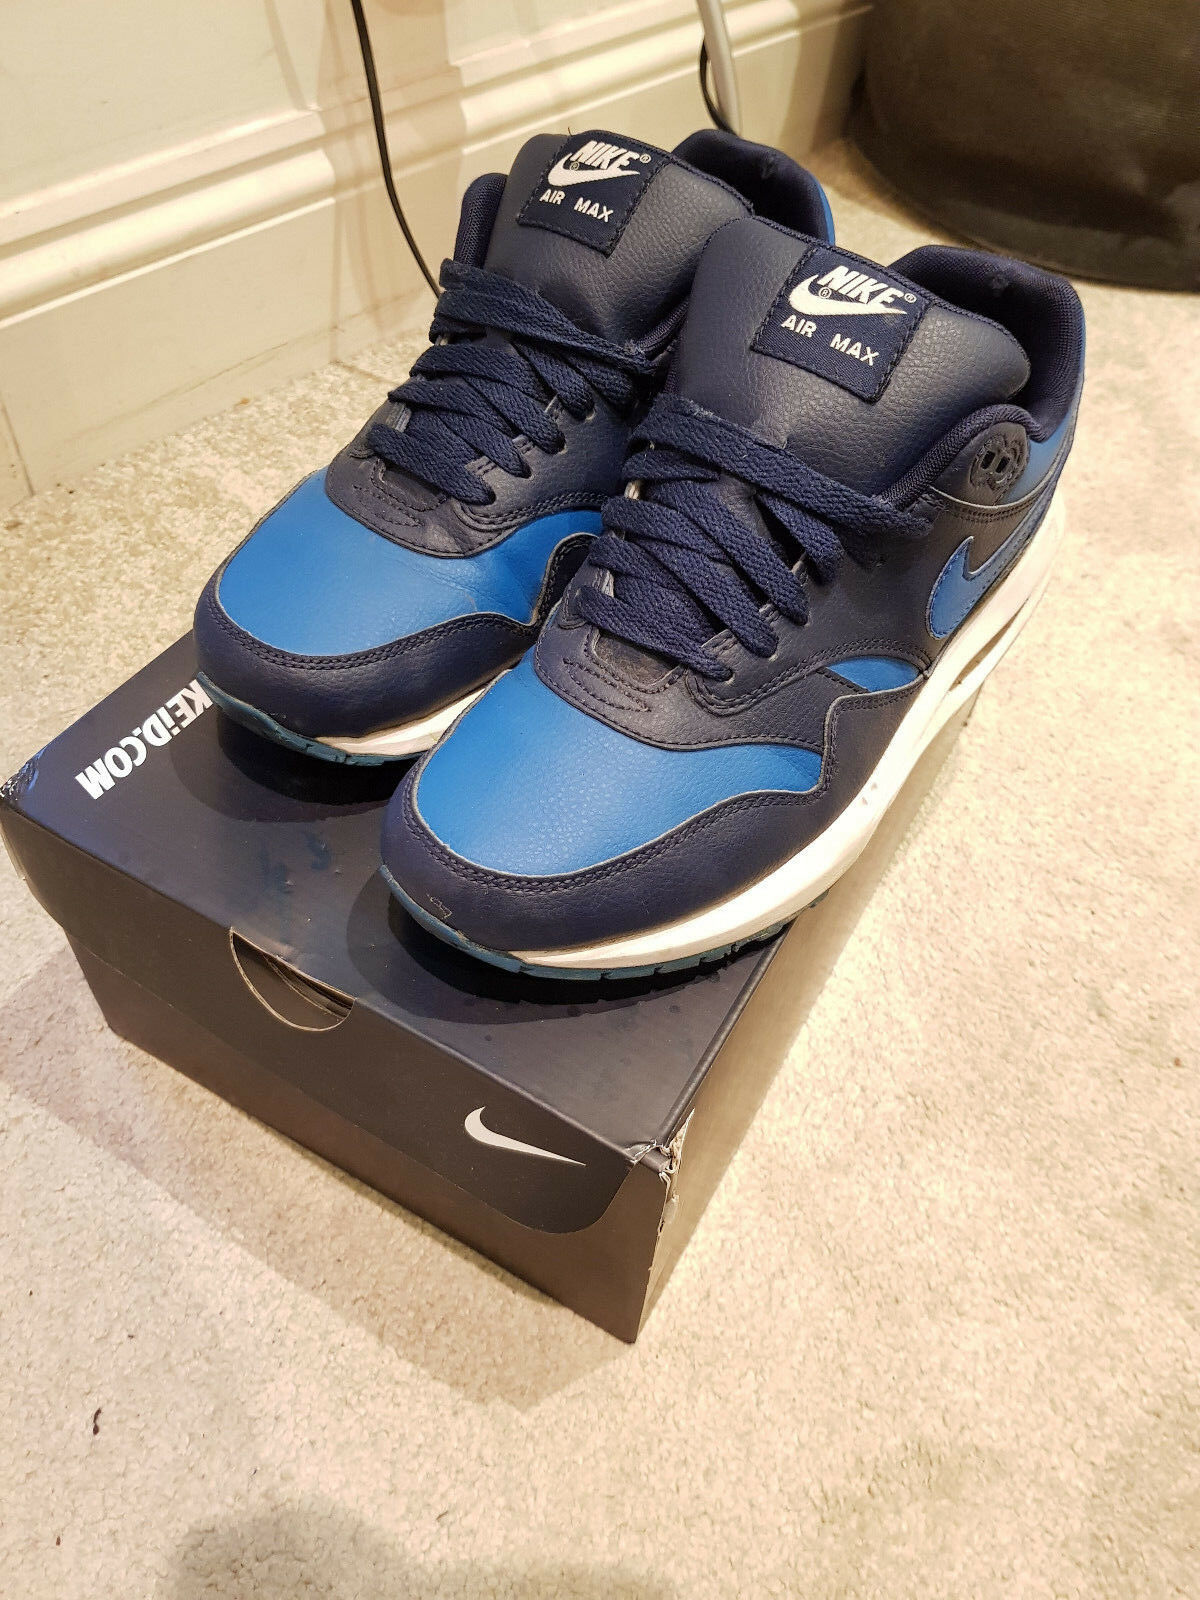 Hommes Nike Air Max 1 RARE Bleu blanc Nike ID RARE 1 Custom One Off Trainer Chaussures UK7 b70d04